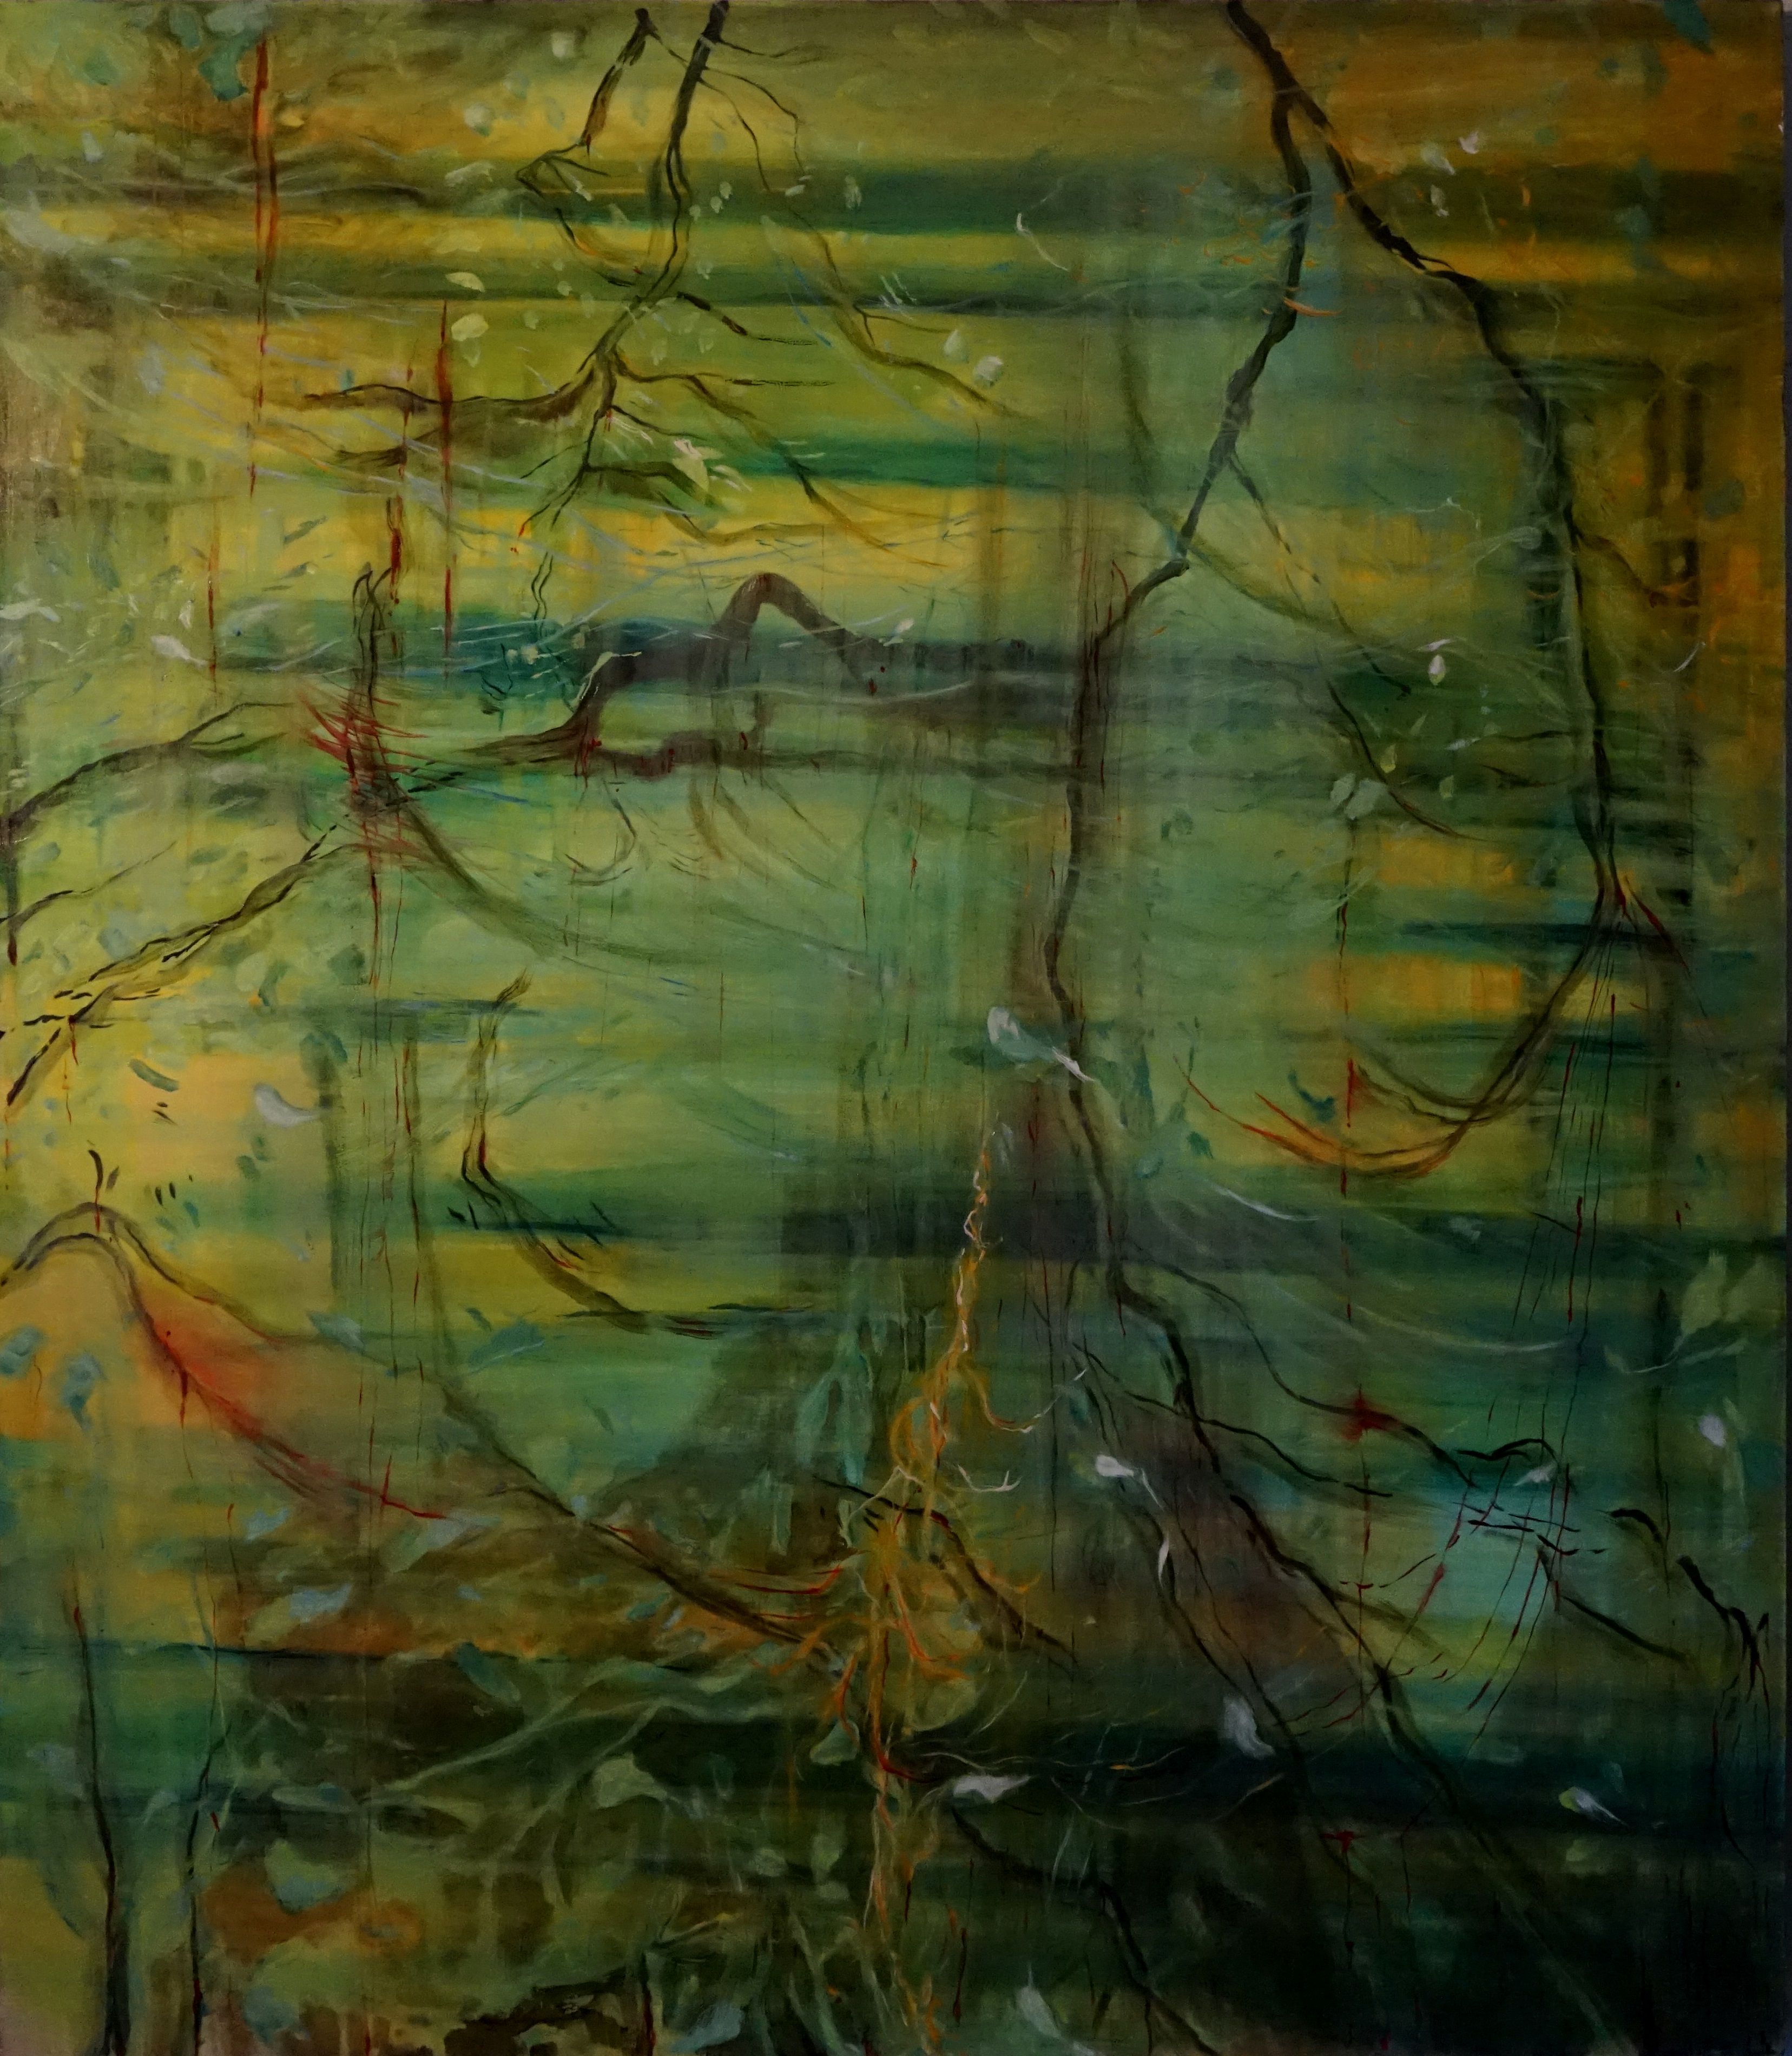 the-song-of-the-bloody-landscape, oil, 150cm x 130cm, 2020